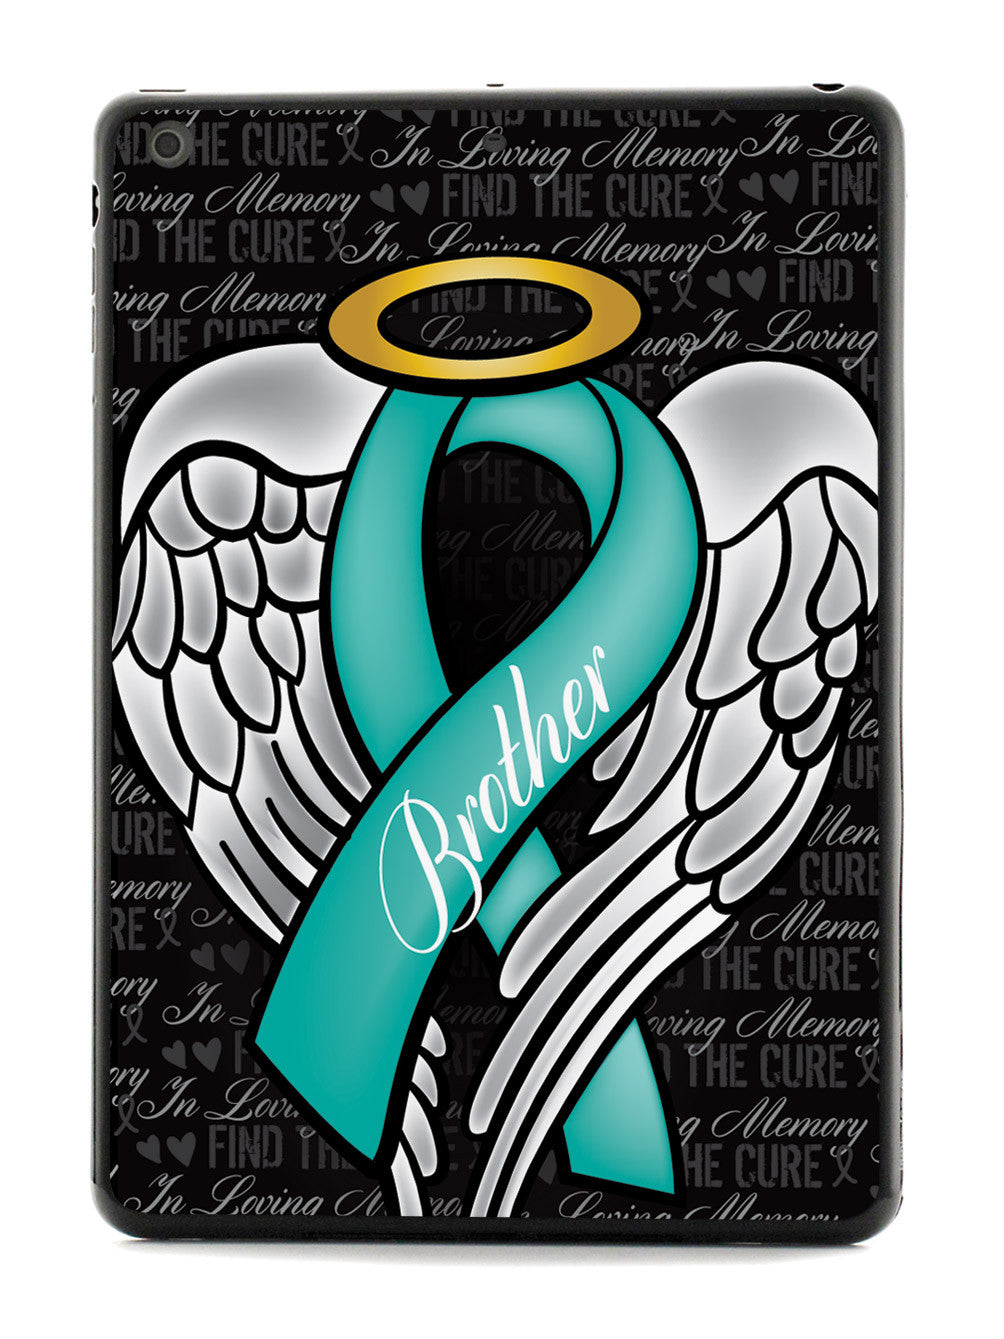 In Loving Memory of My Brother - Teal Ribbon Case